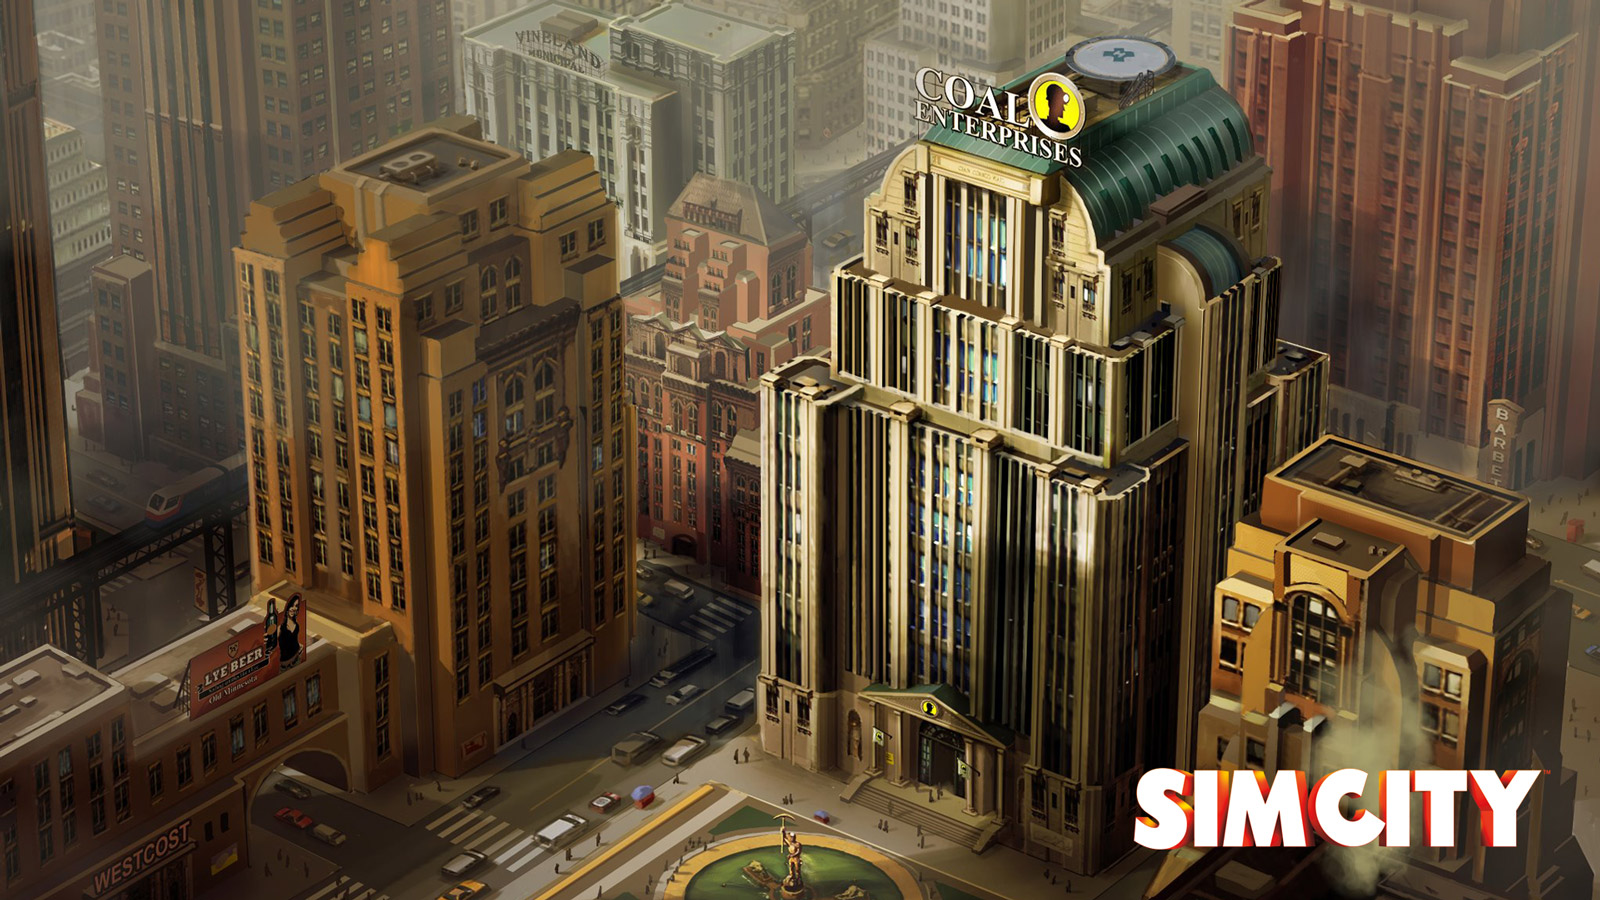 Free SimCity Wallpaper in 1600x900